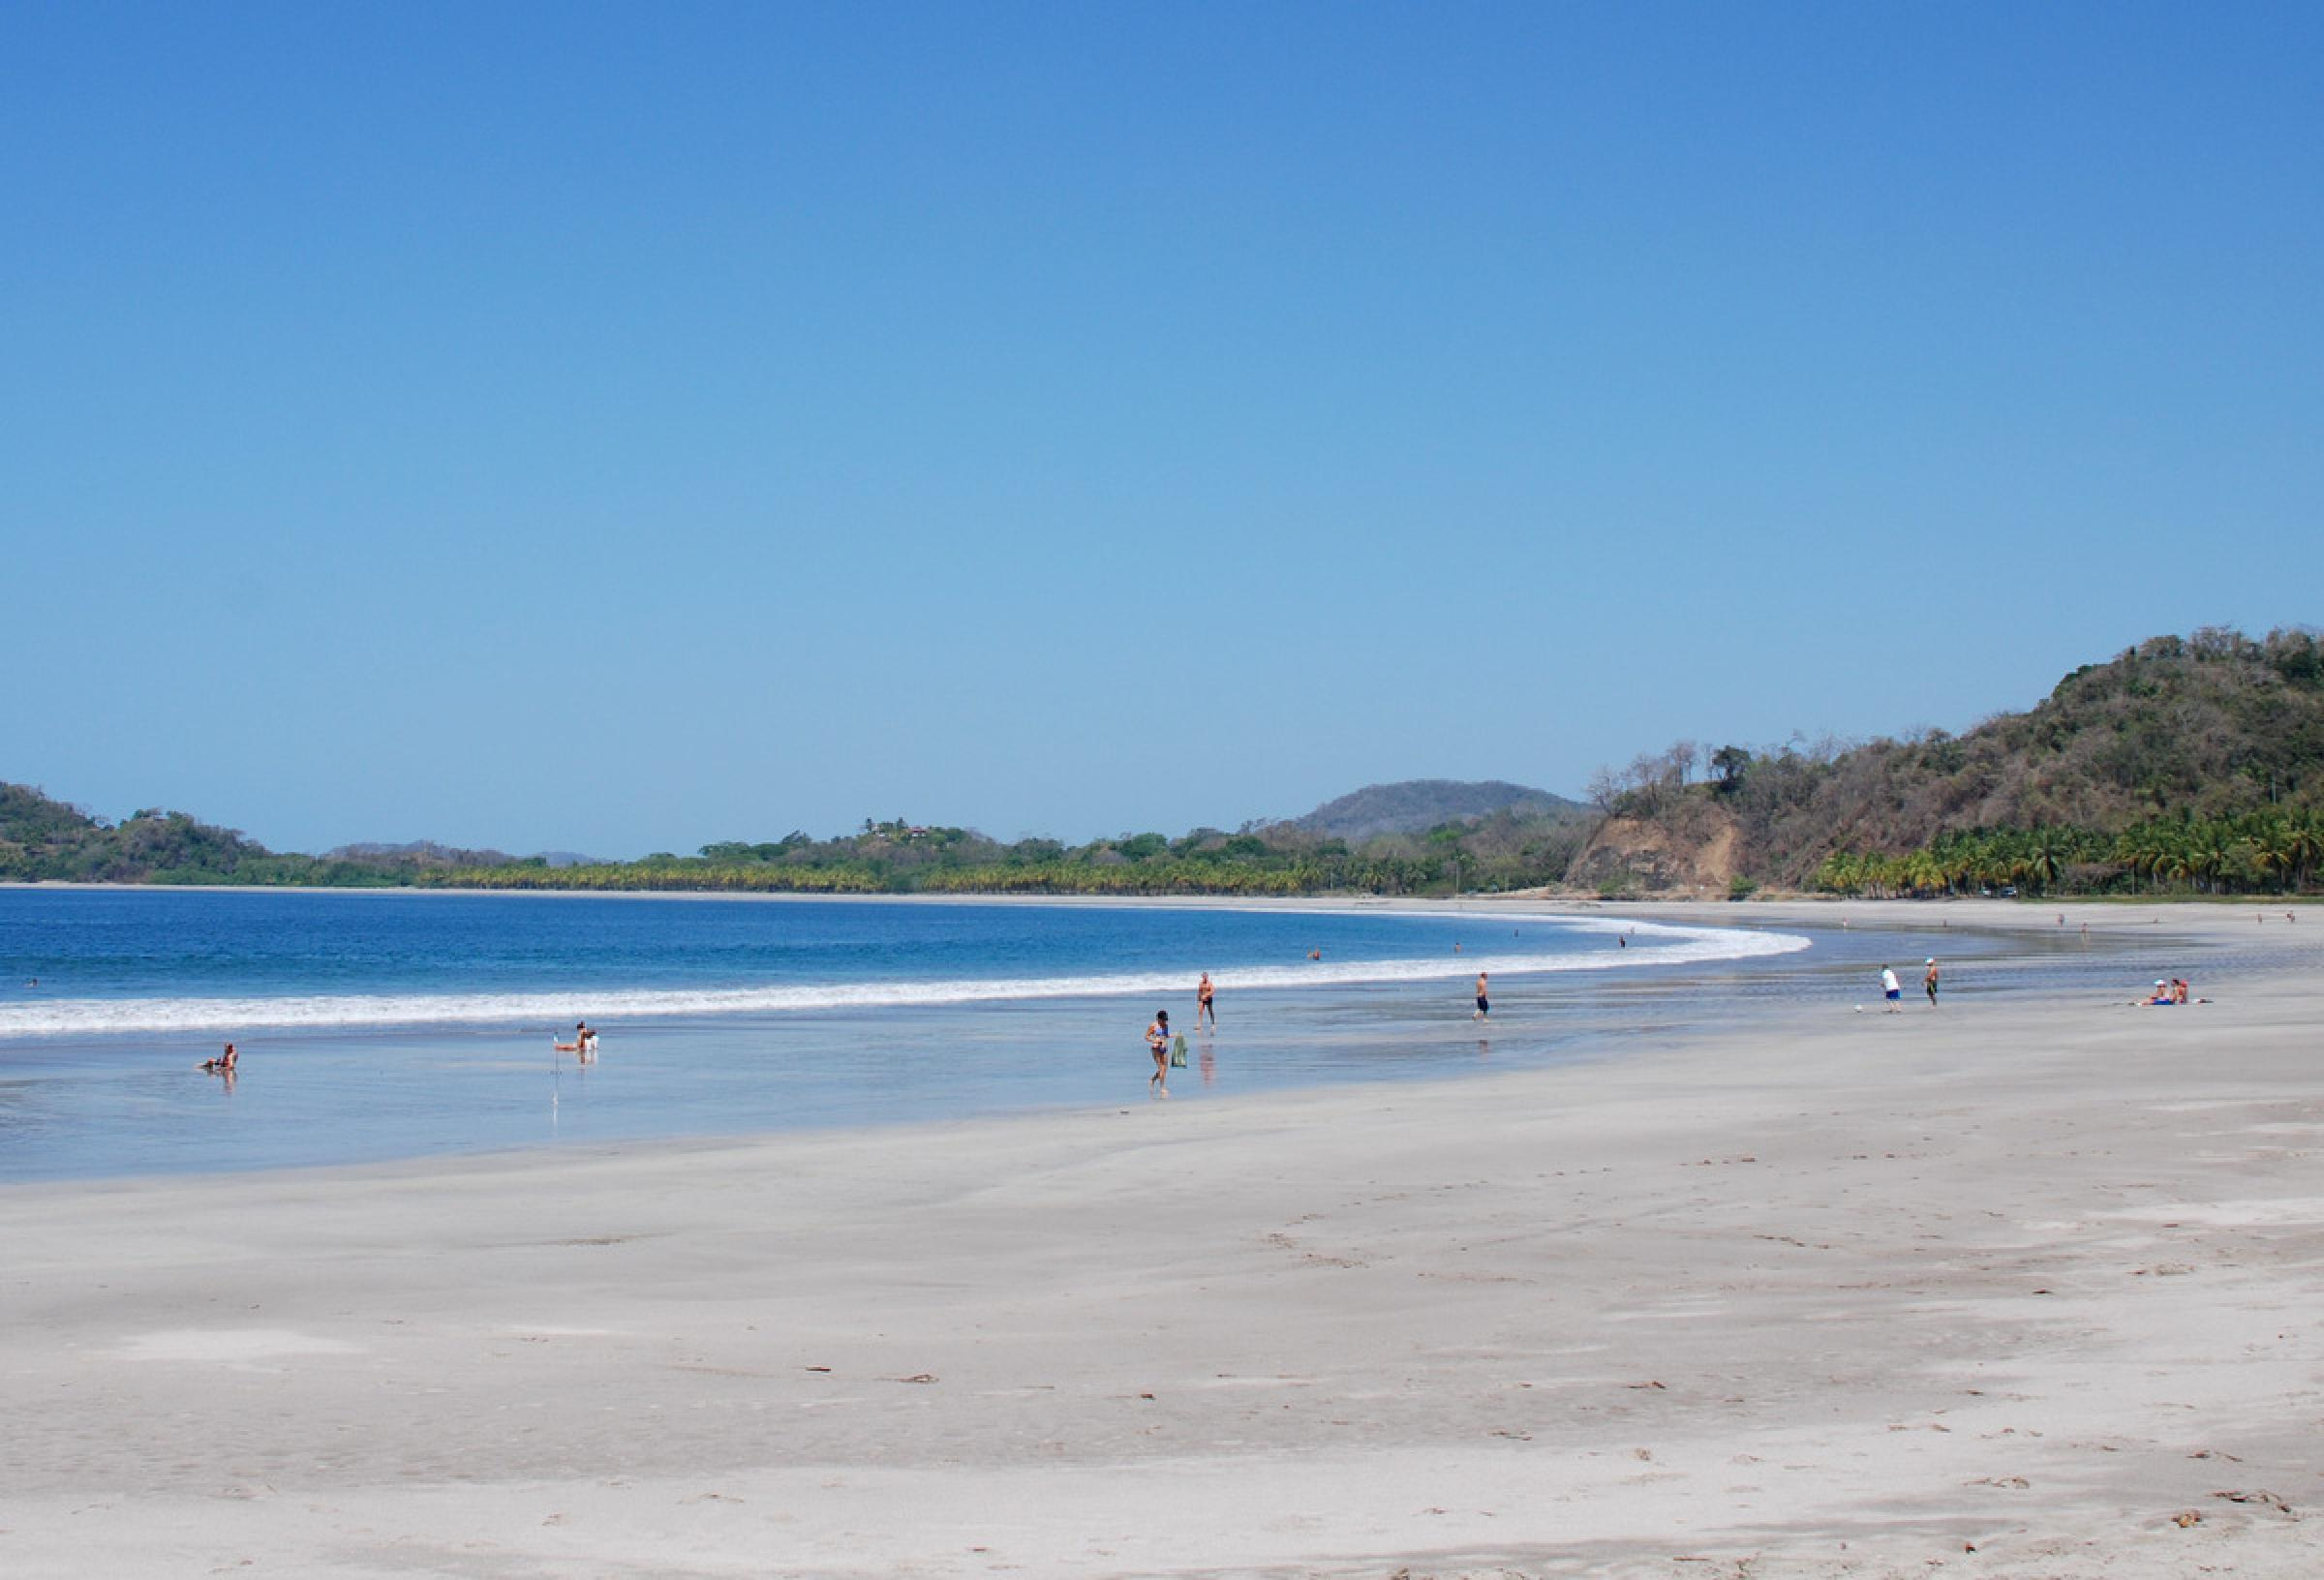 https://www.anywhere.com/img-a/destination/playa-carrillo-costa-rica/2-dsc0074.JPG